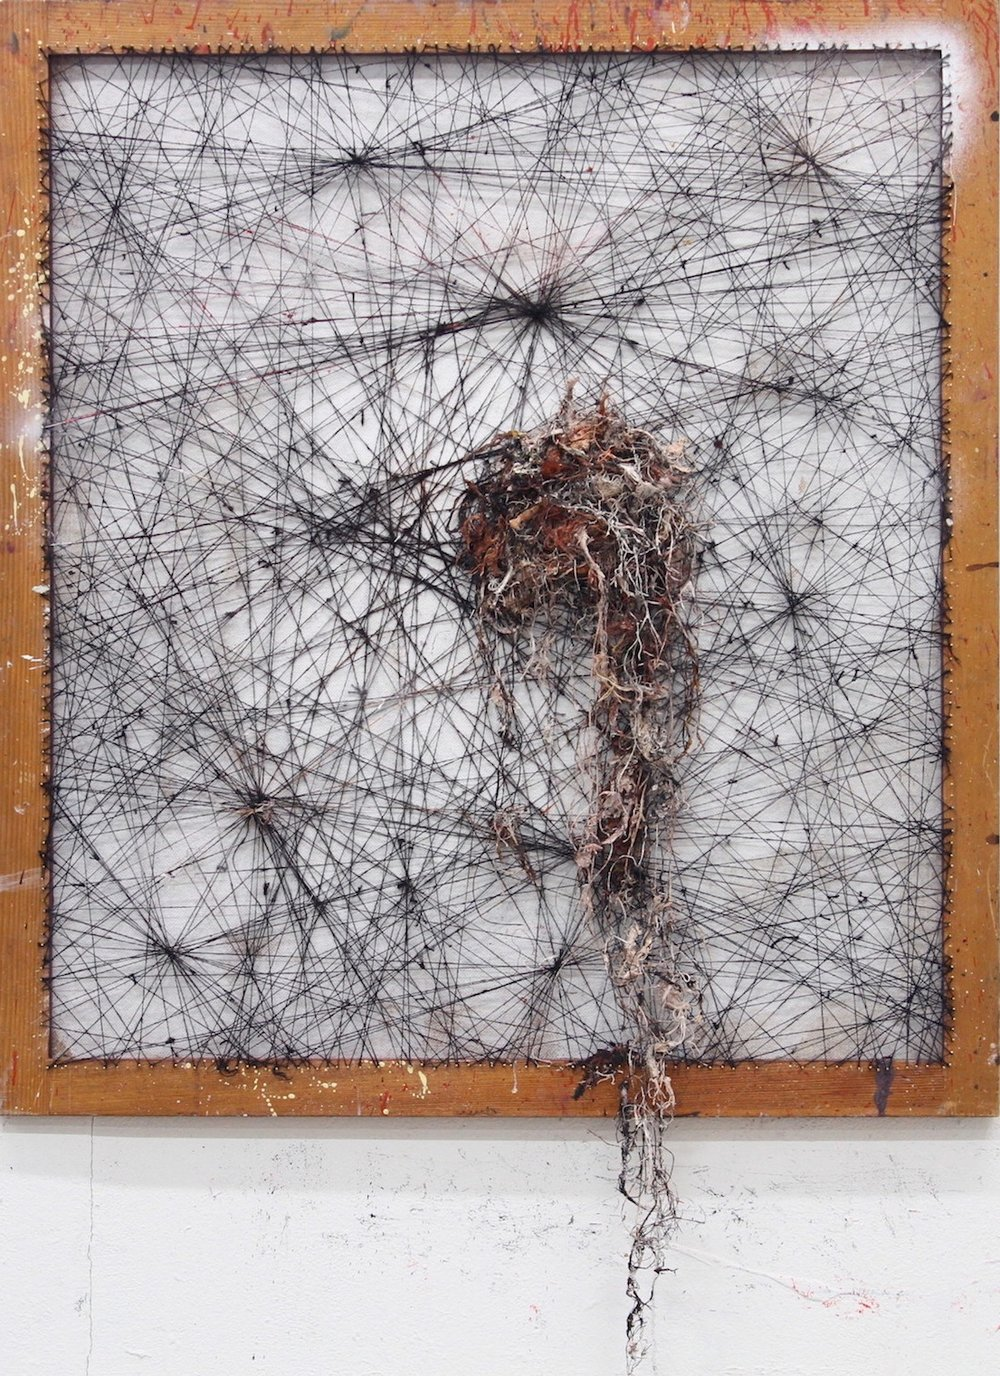 Drop / 2012 / thread, nails, oil and acrylic on wood